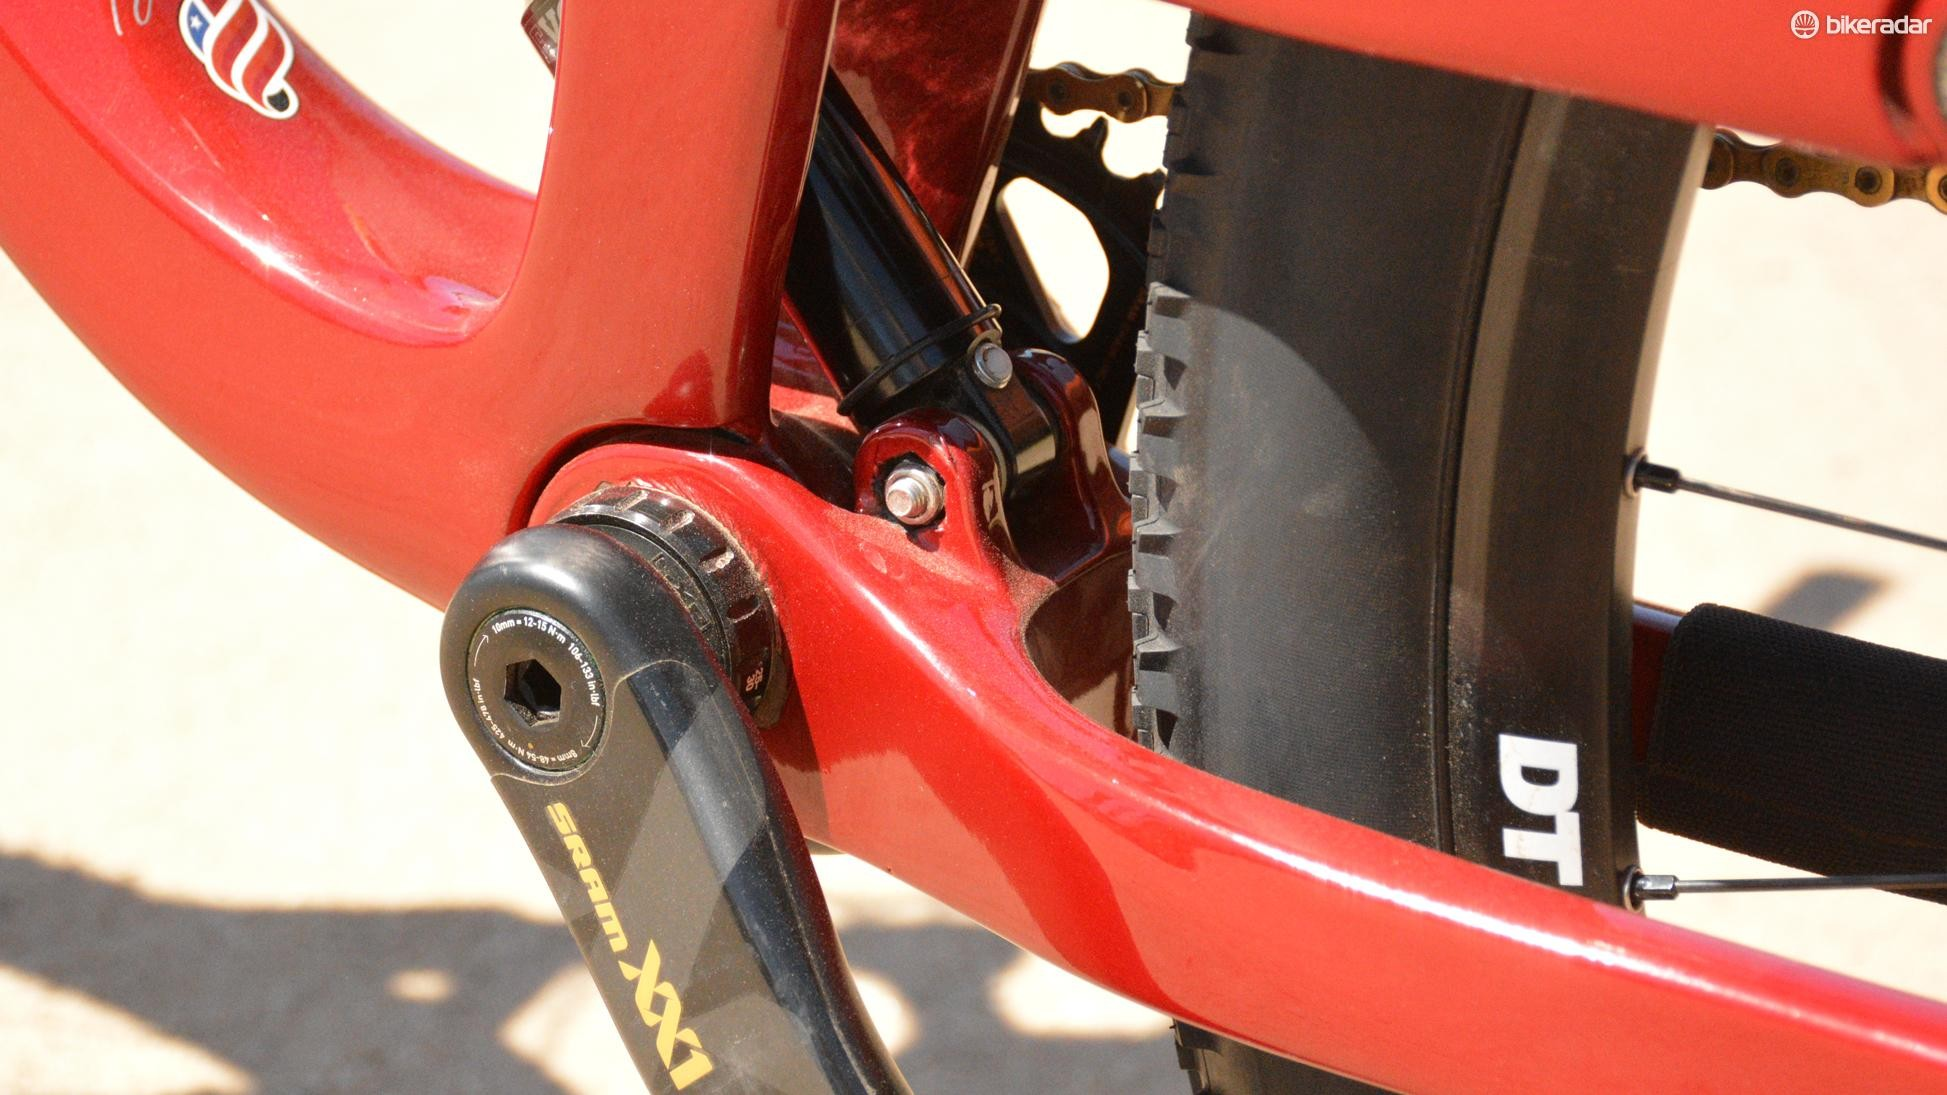 Here you can see how the lower shock mounts directly to the chainstays